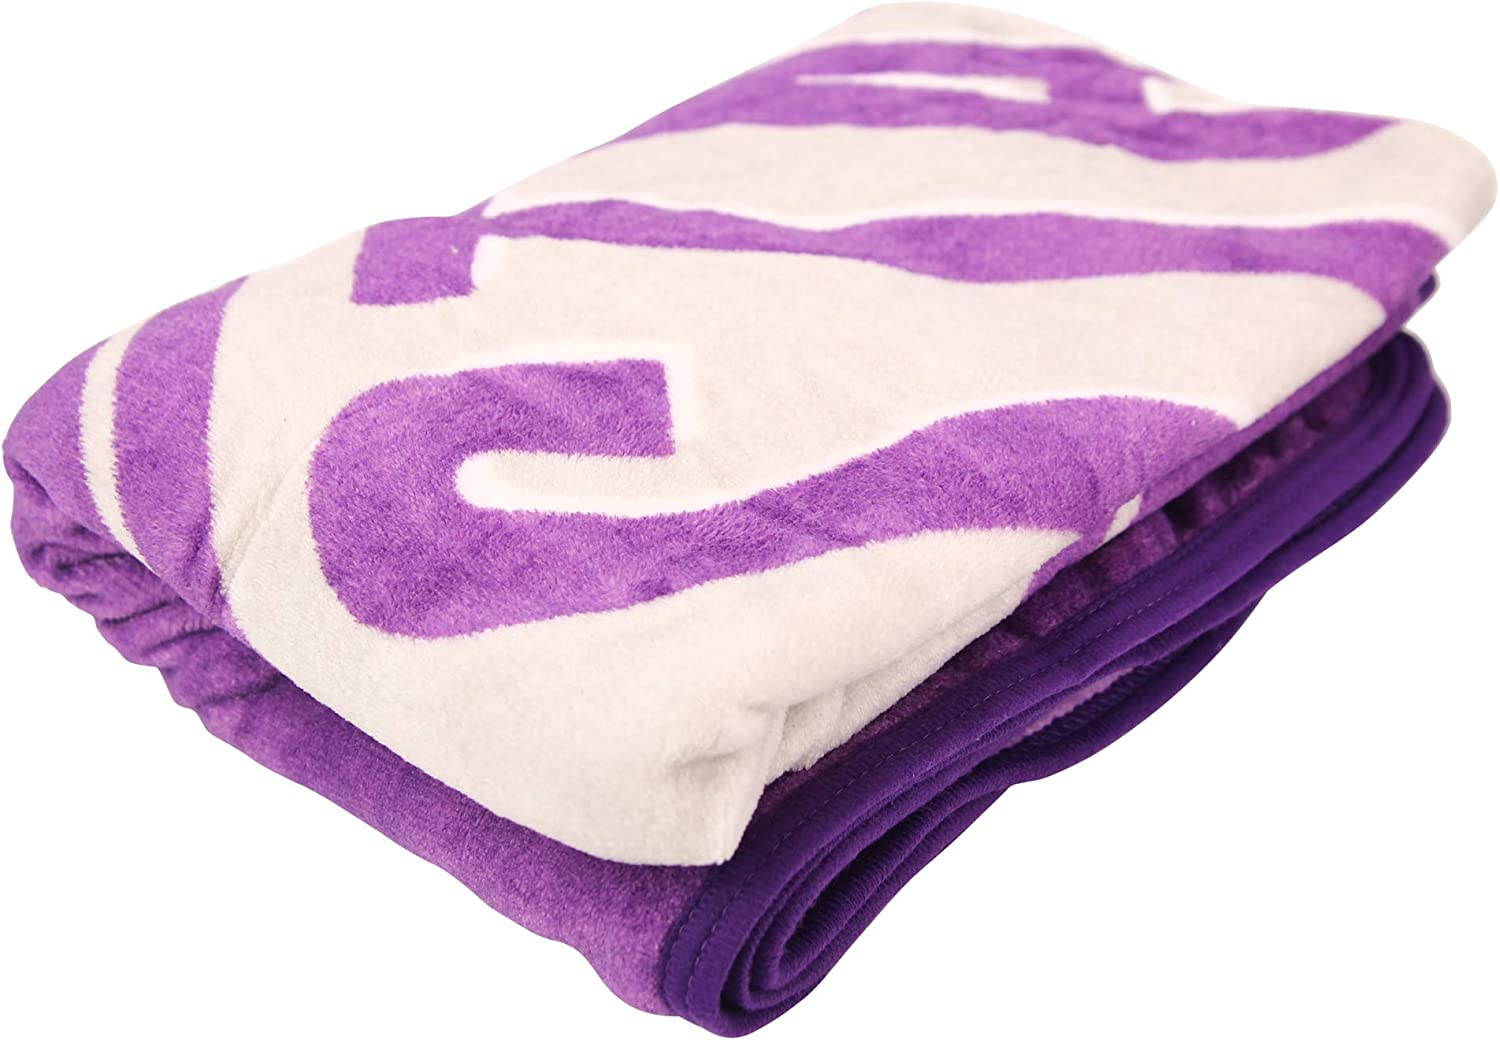 NCAA Collegiate Section Super Soft Plush Throw Blanket